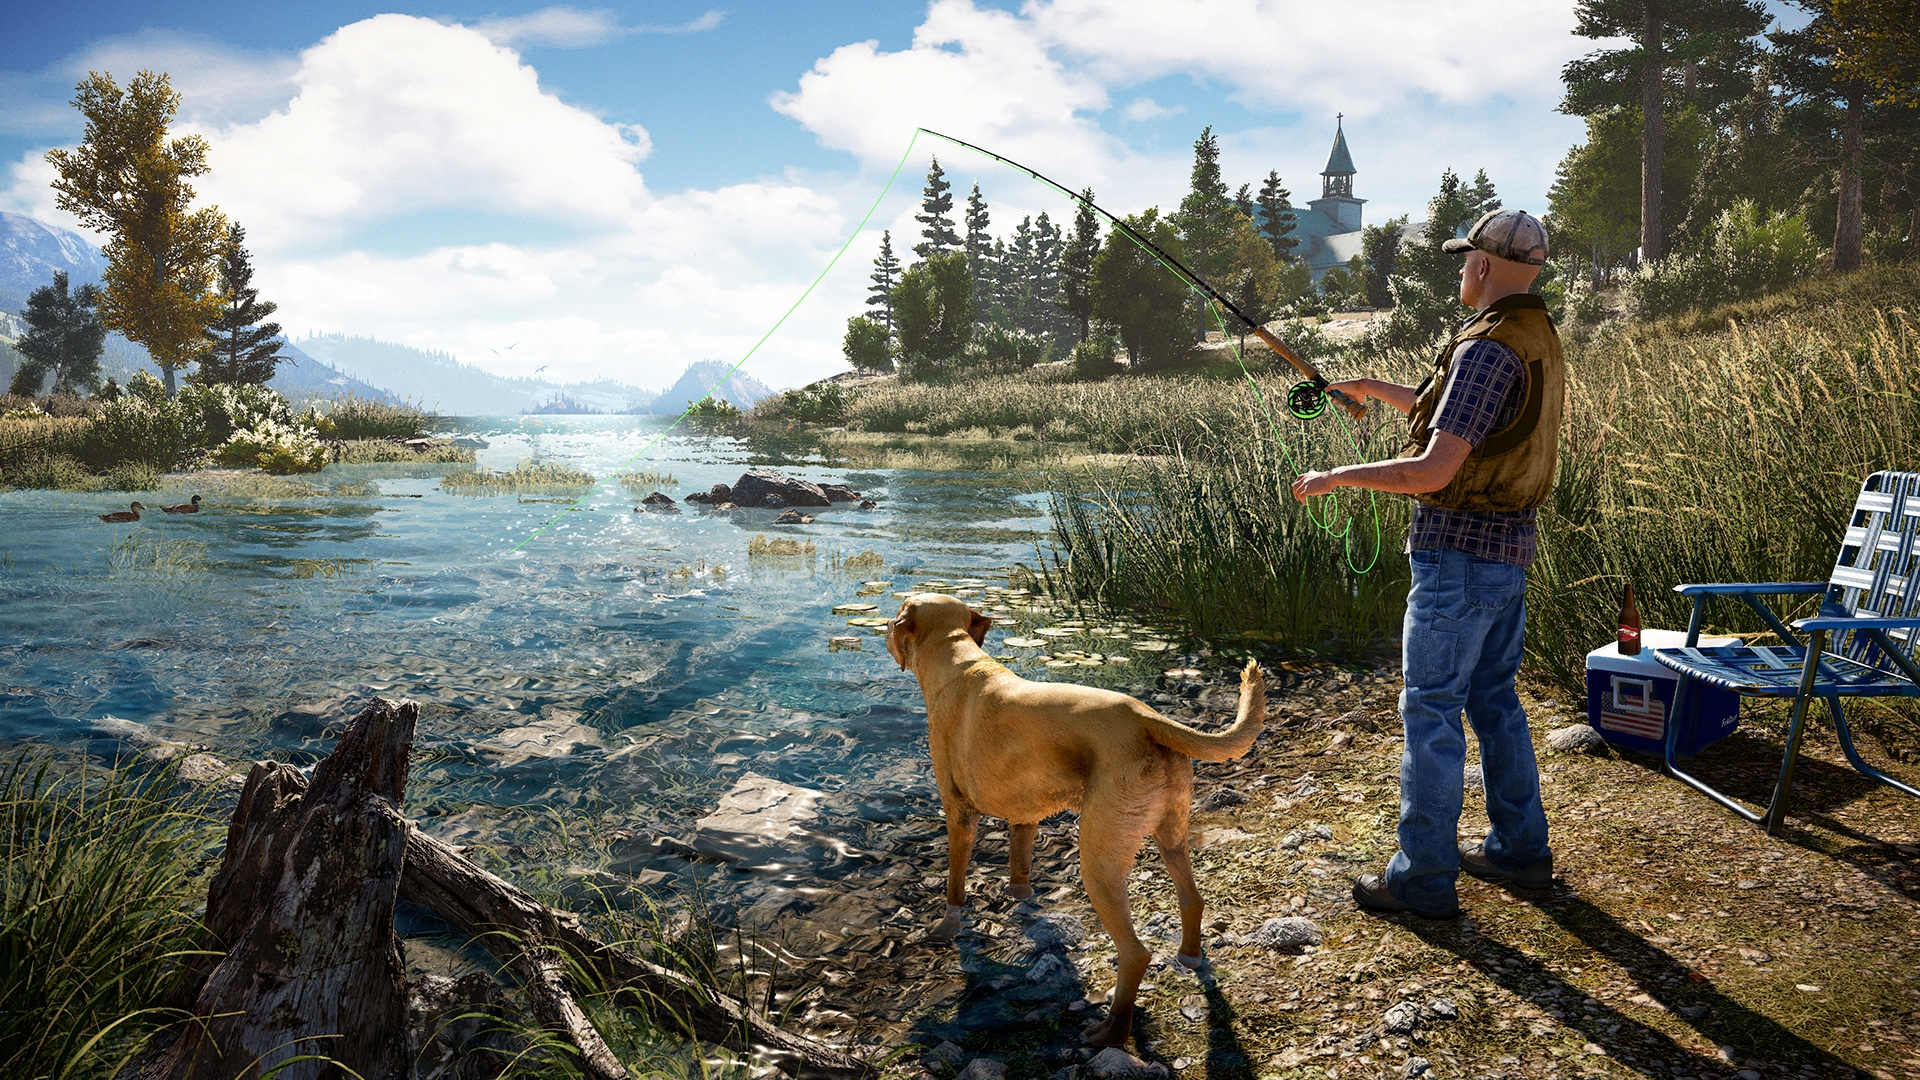 Check Out Far Cry 5, For Honor, and More at PAX West 2017 | DeviceDaily.com